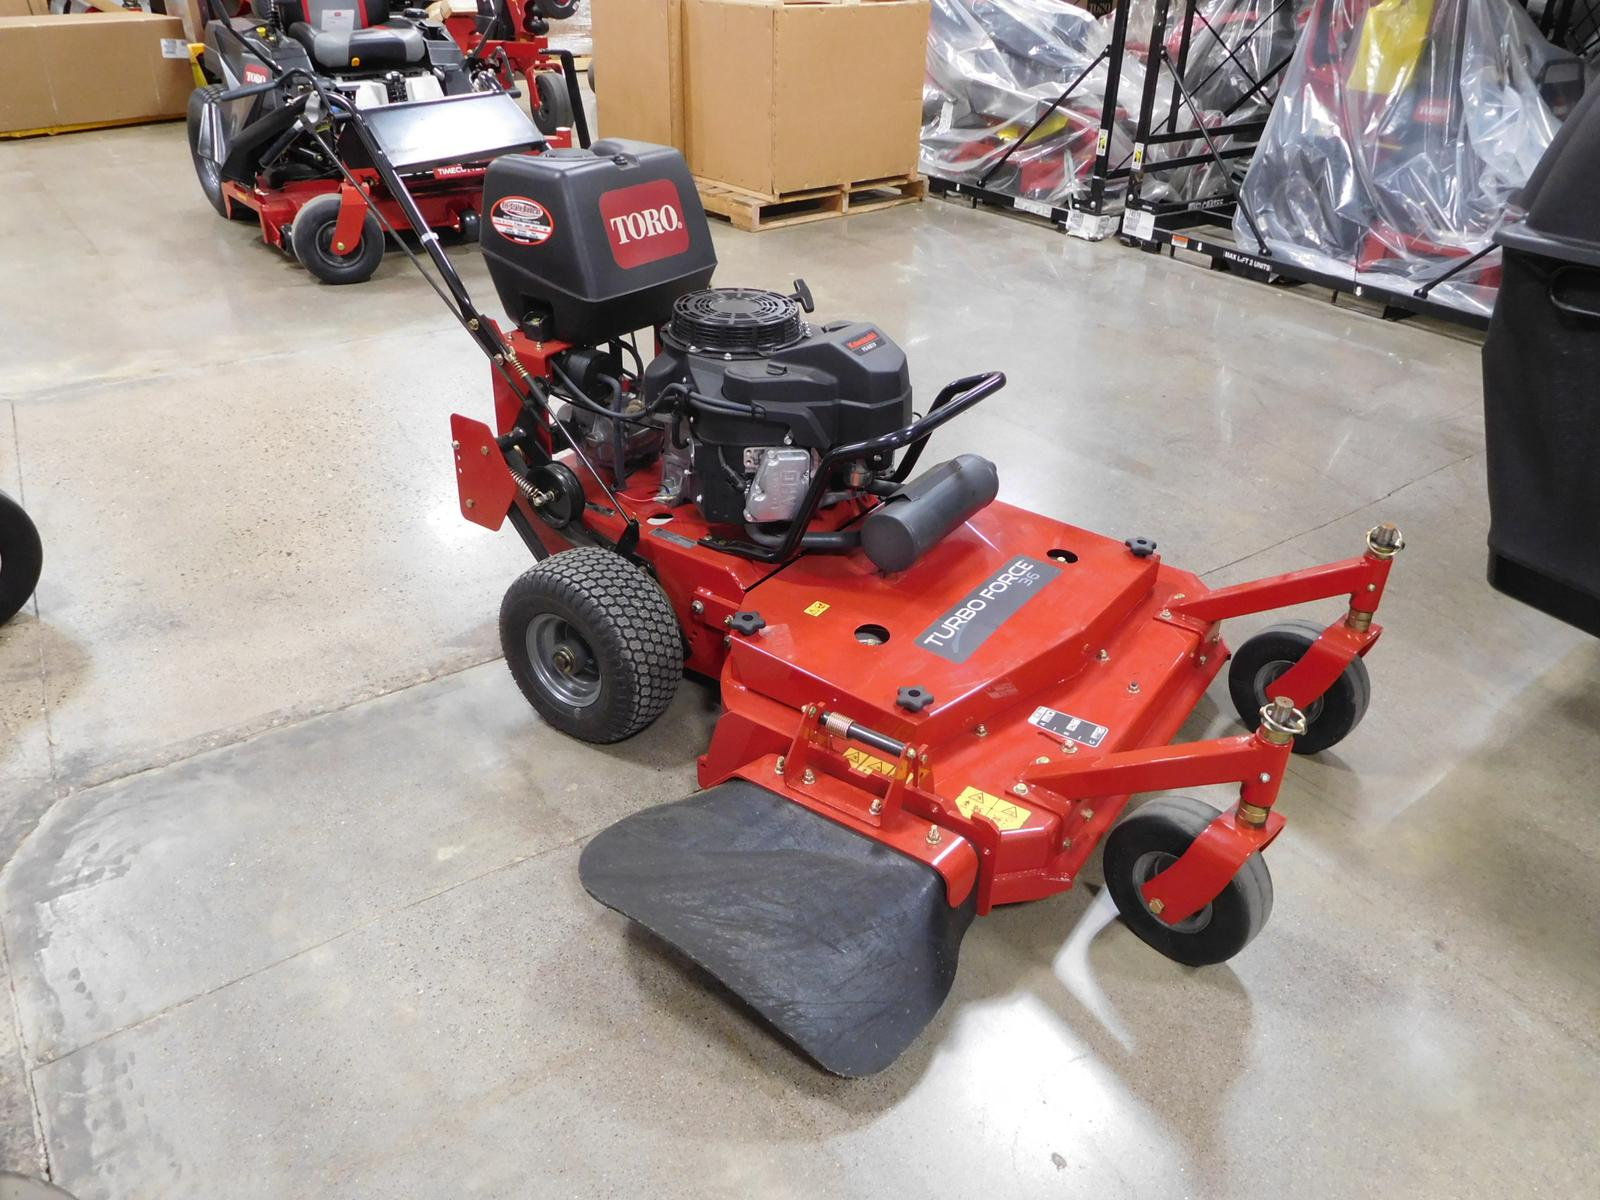 Inventory from Toro Tri-State Bobcat